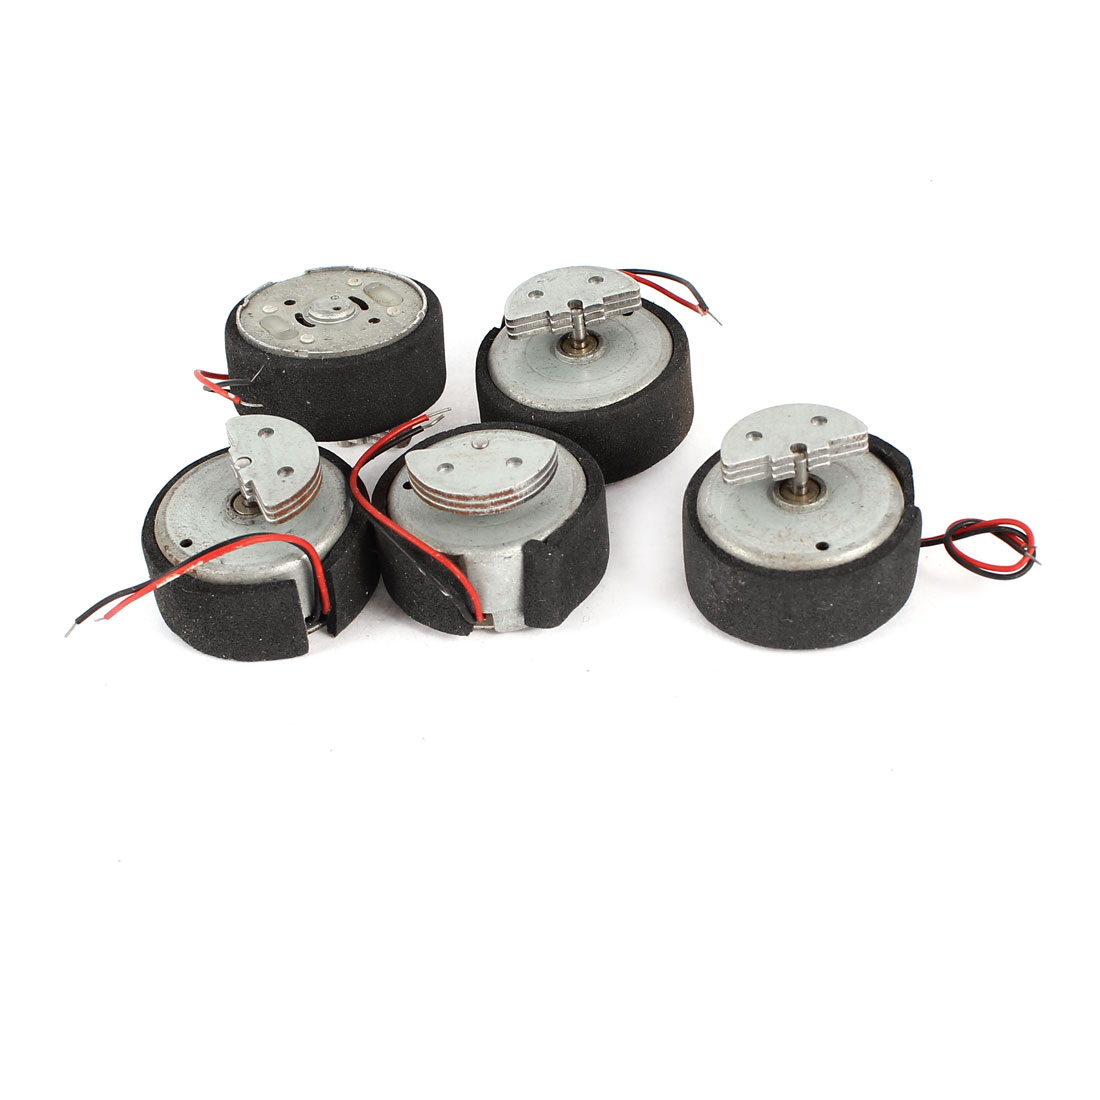 5 Pcs Vibration Vibrating Electric Micro Motor 3500RPM DC 1.5-6V for Game Devices